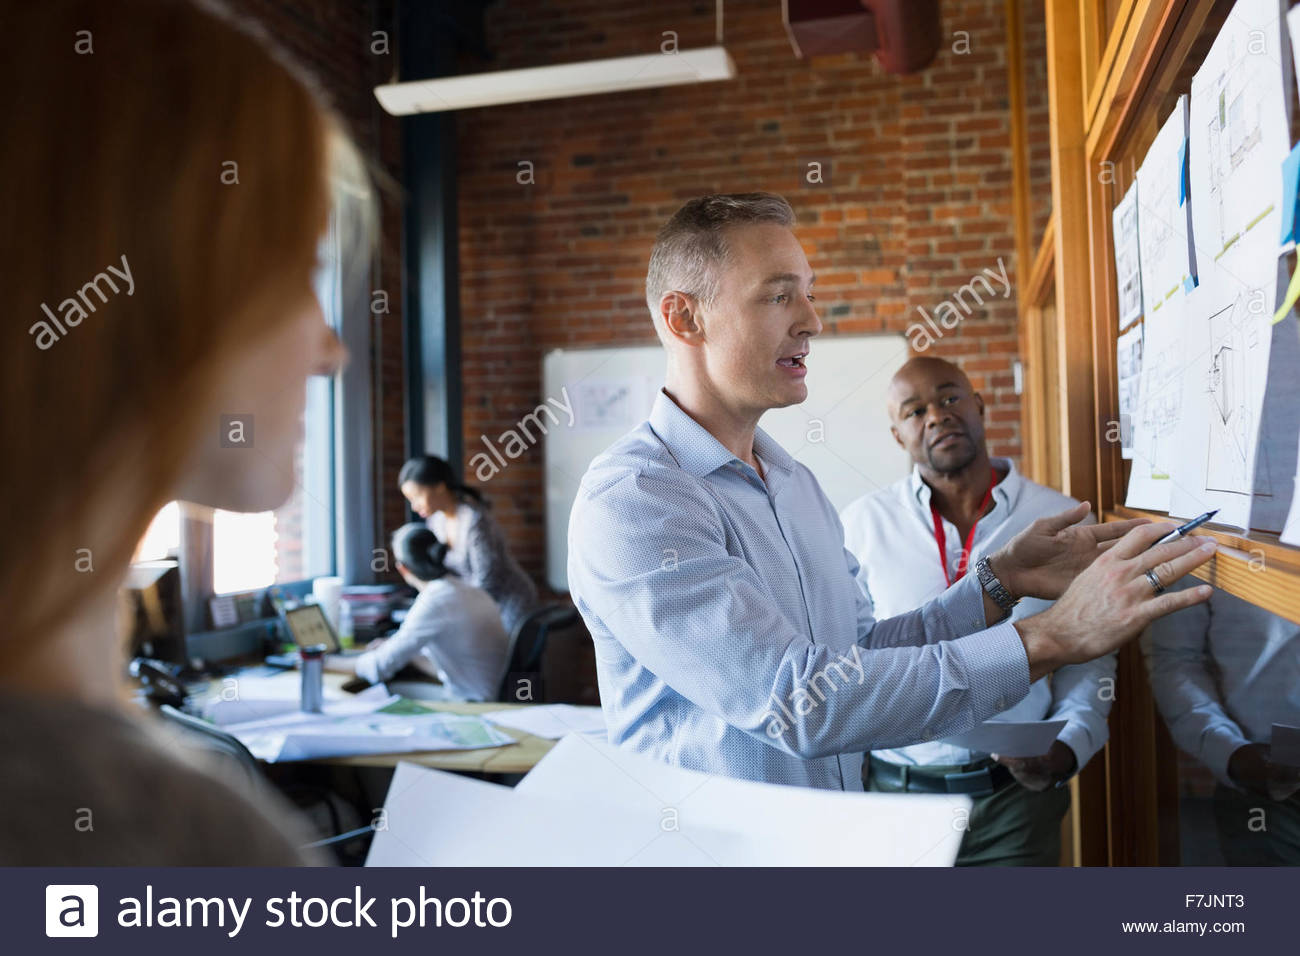 Business people brainstorming with paperwork in office meeting - Stock Image